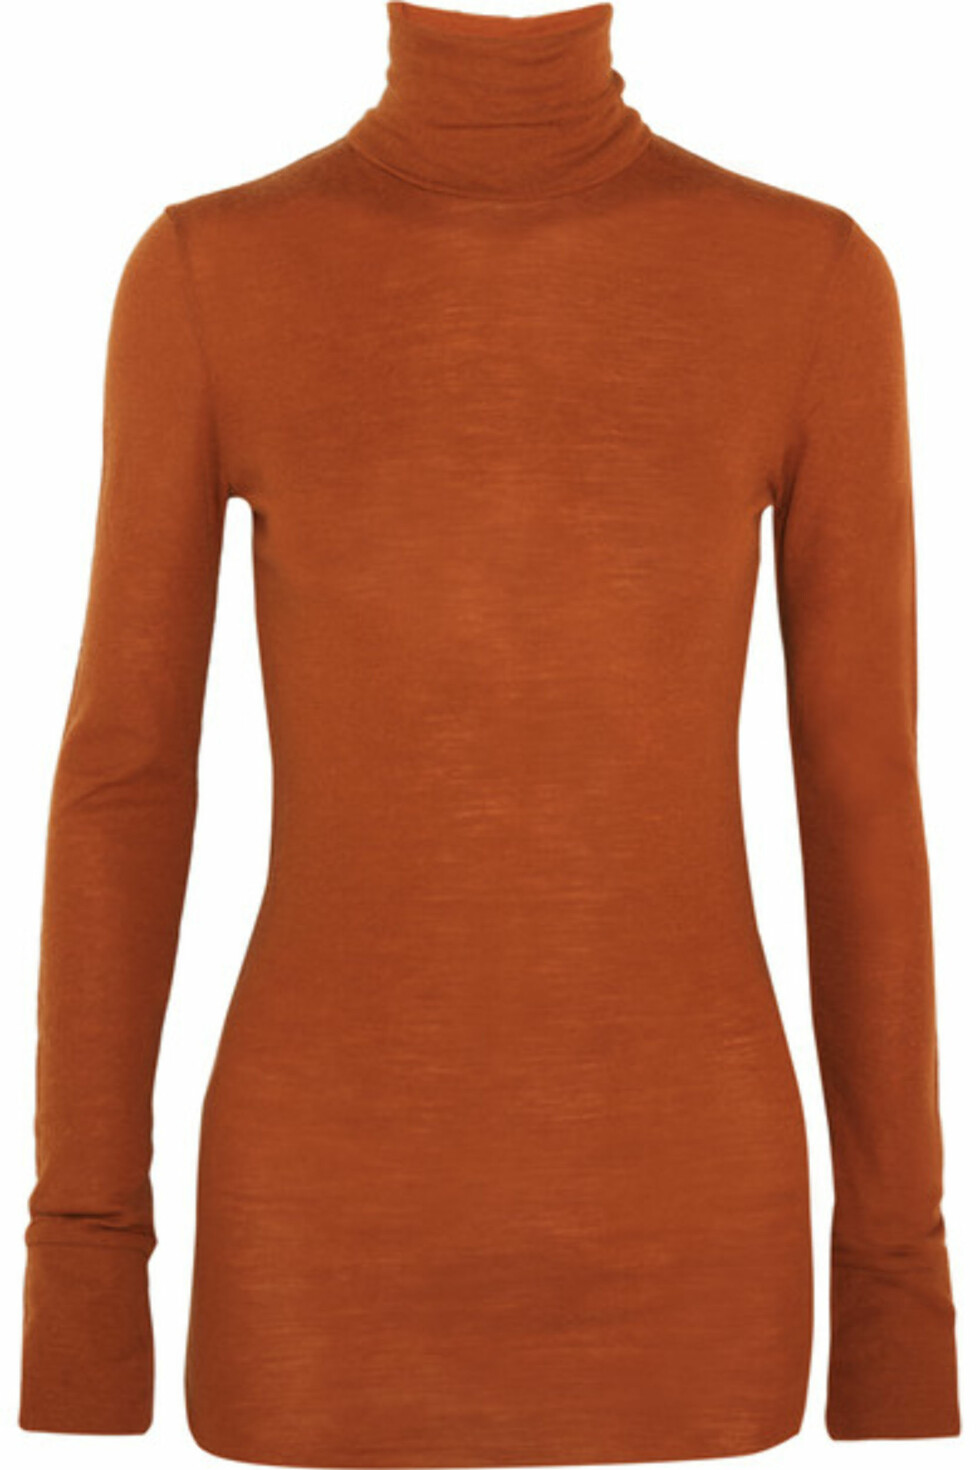 Pologenser fra Etoile Isabel Marant via Net-a-porter.com | kr 1251 | https://www.net-a-porter.com/no/en/product/730315/etoile_isabel_marant/joey-wool-jersey-turtleneck-top